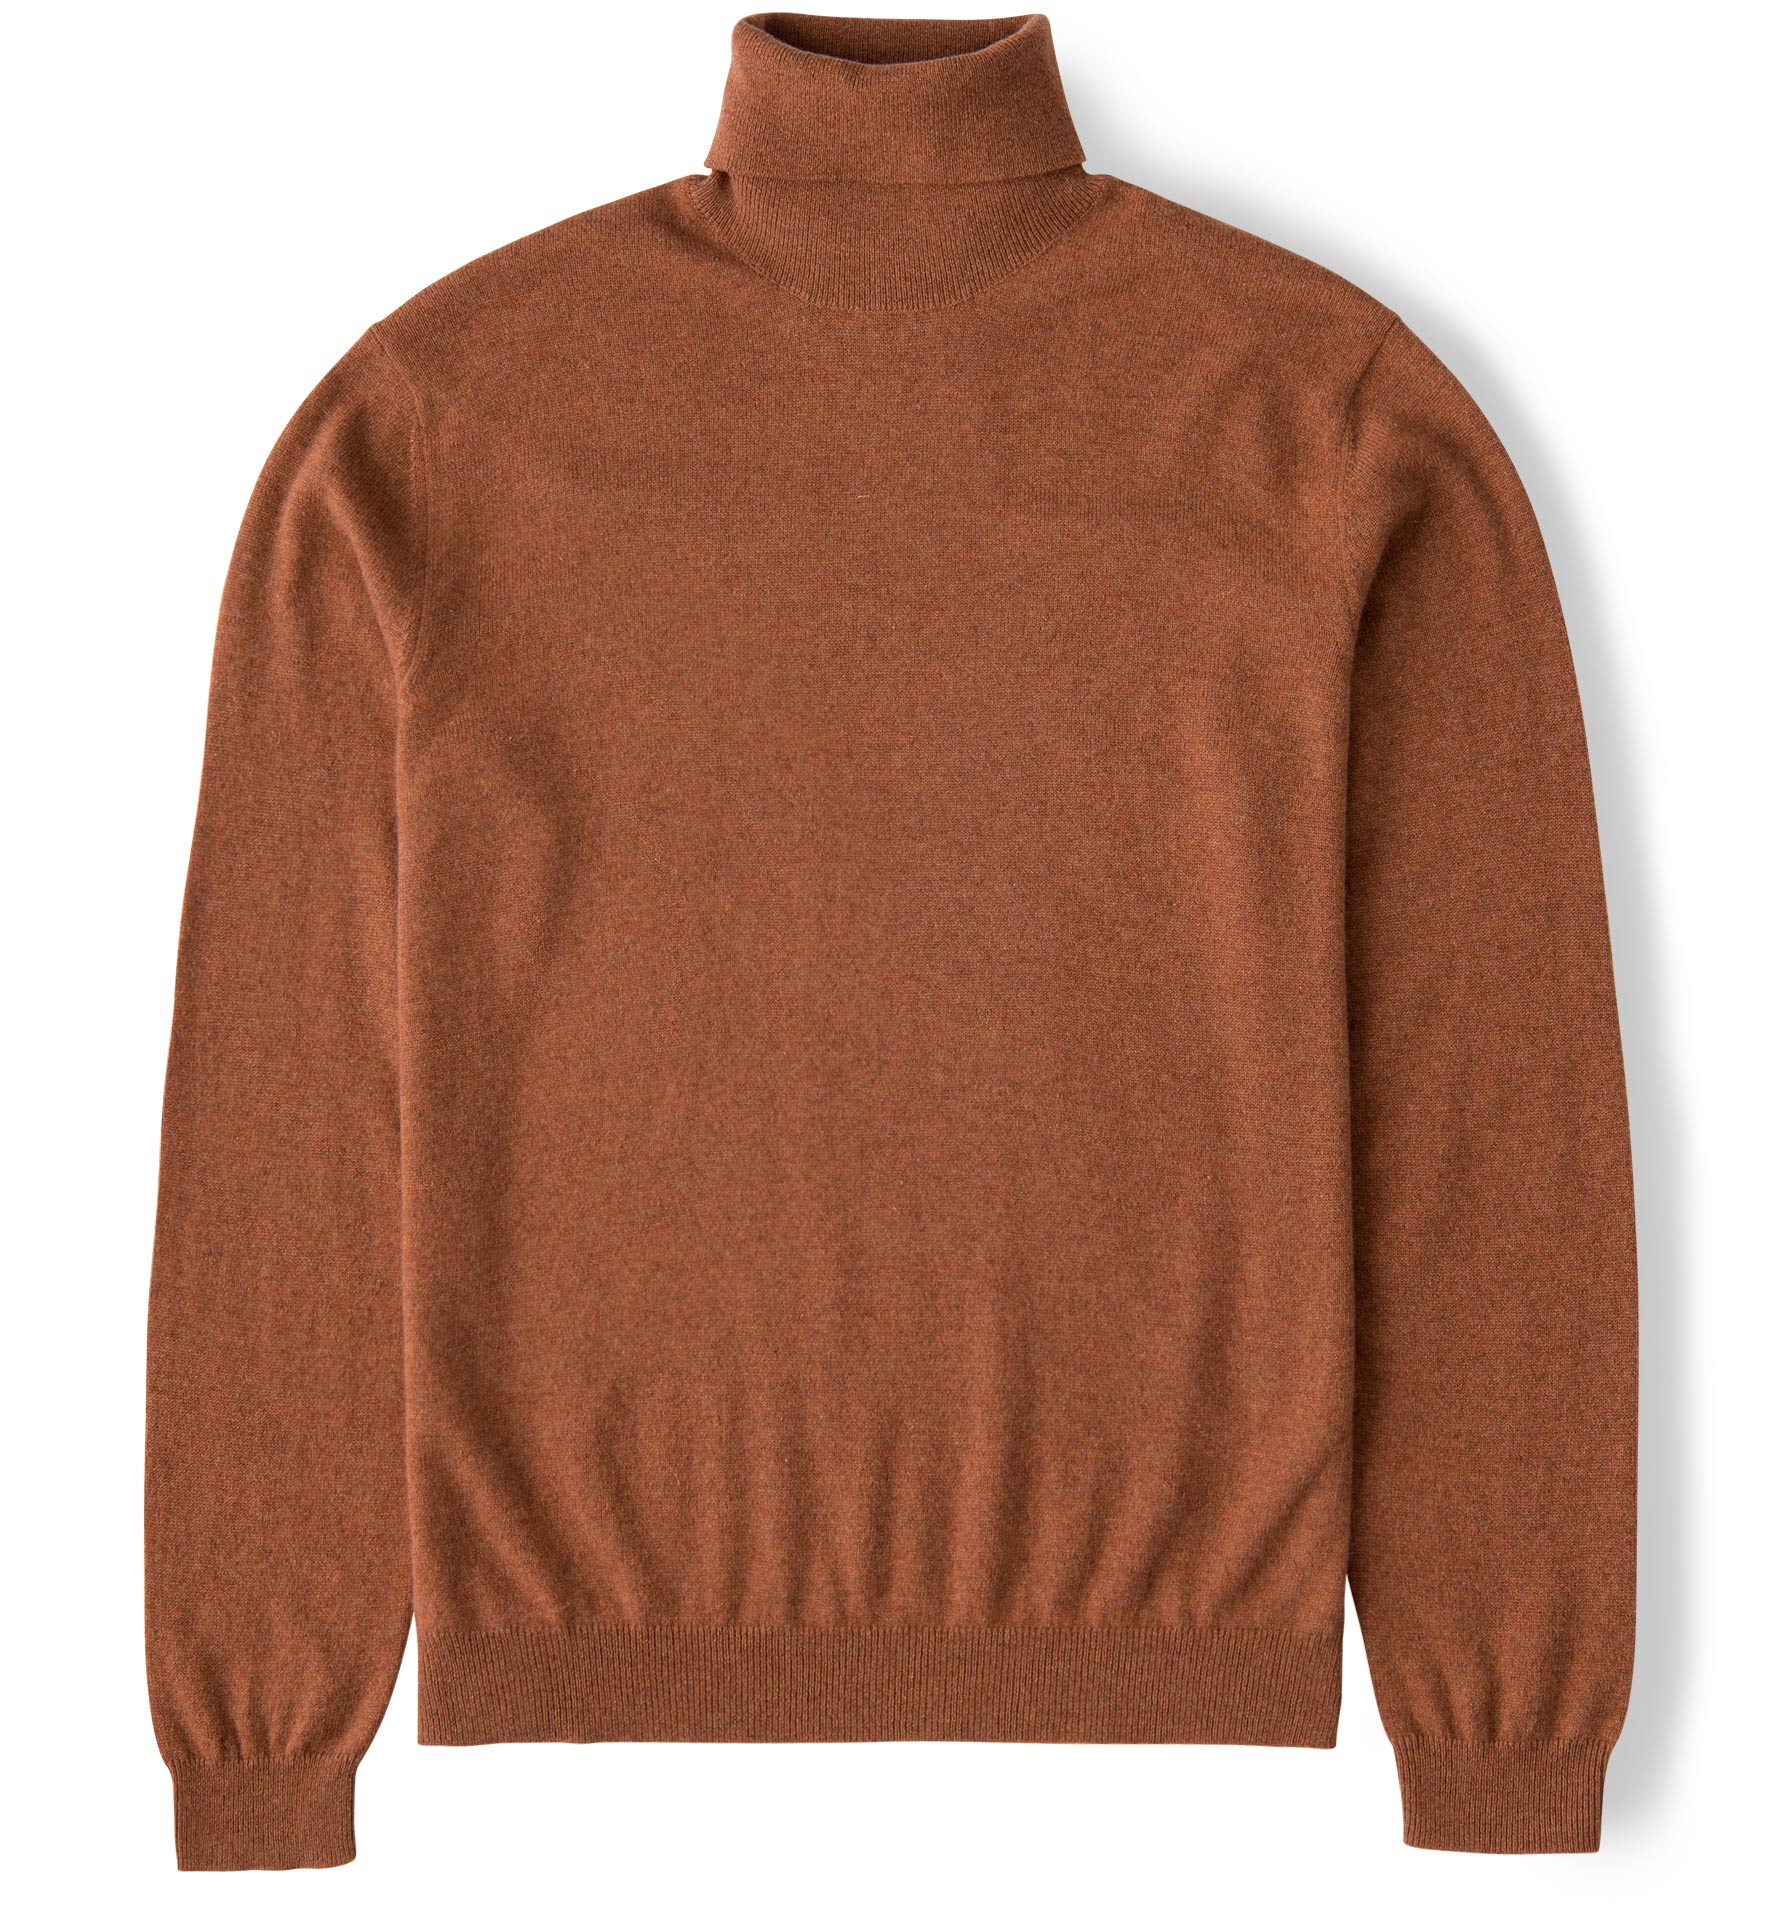 Zoom Image of Sienna Cashmere Turtleneck Sweater